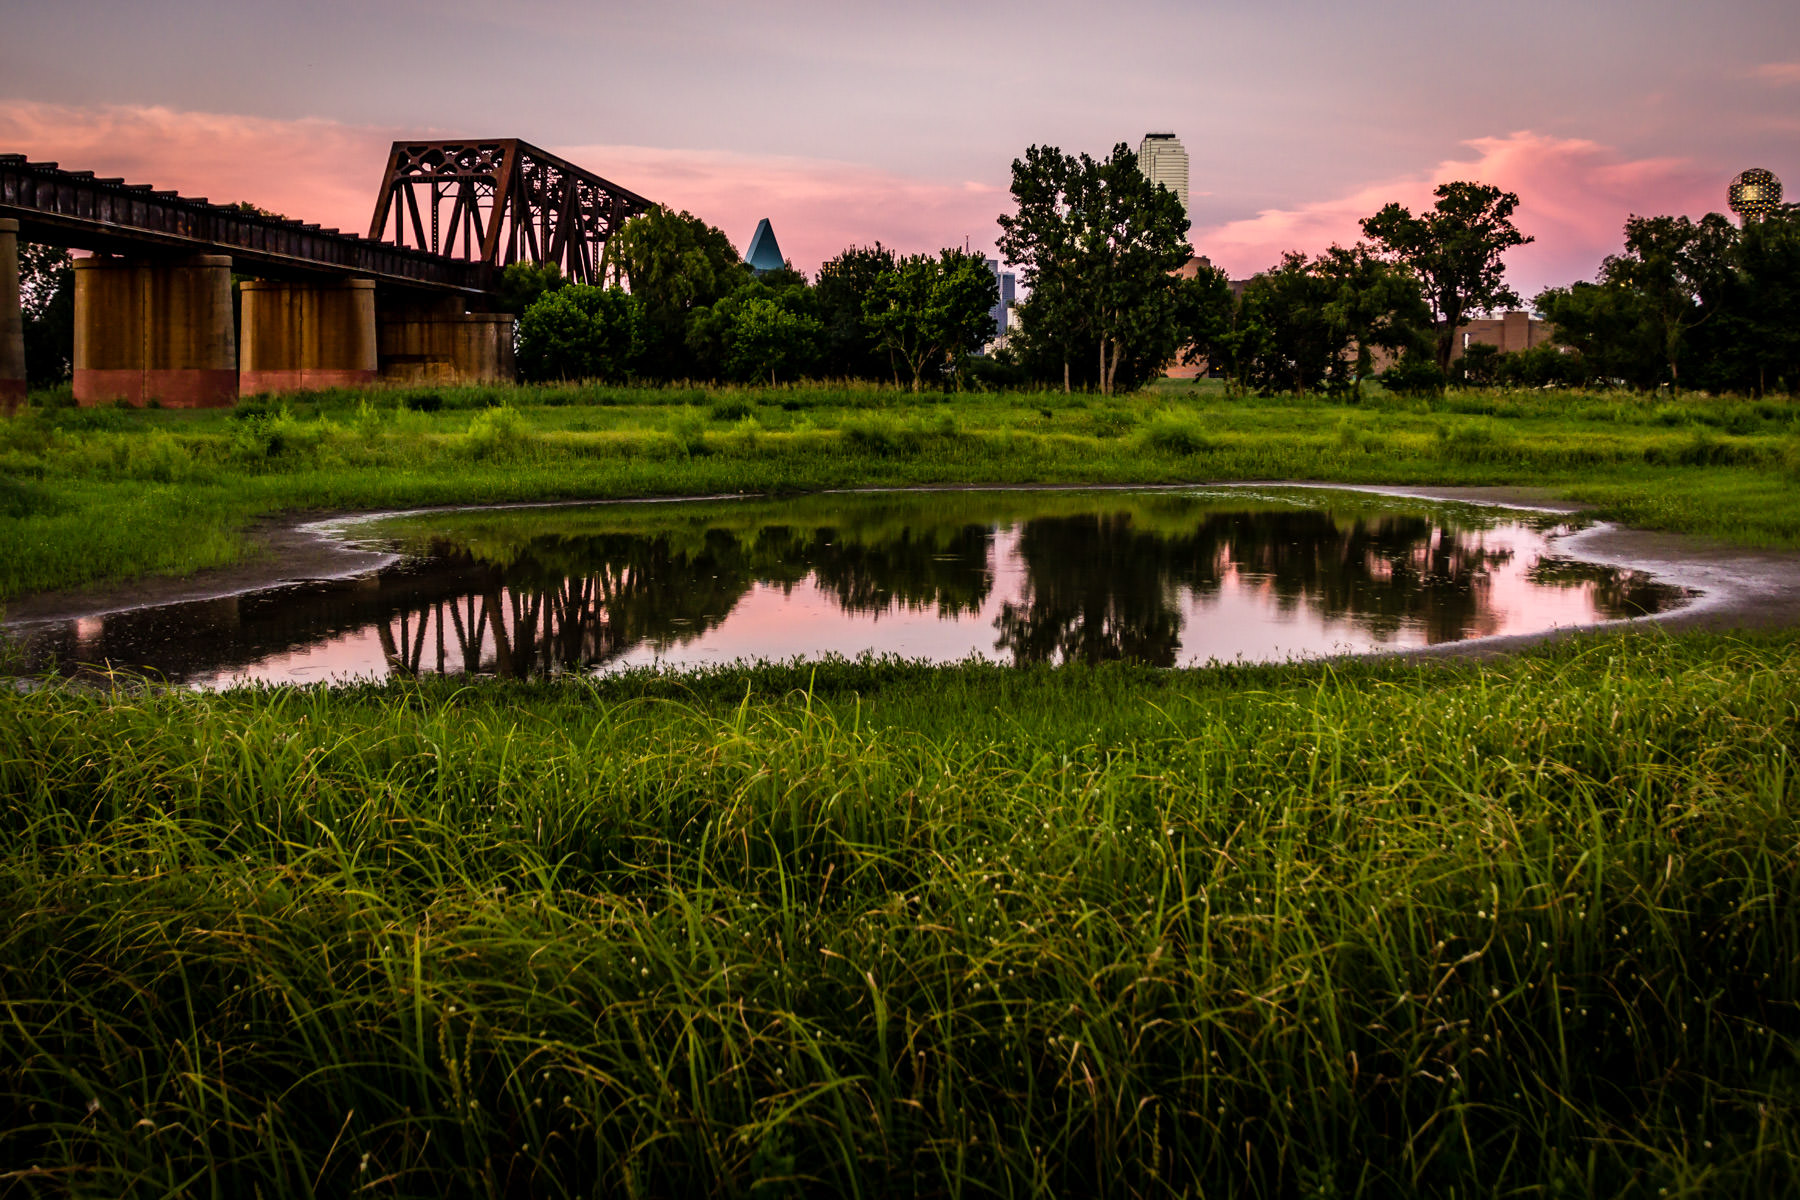 A railroad bridge over the Trinity River just west of Downtown Dallas, as seen just before sunset.